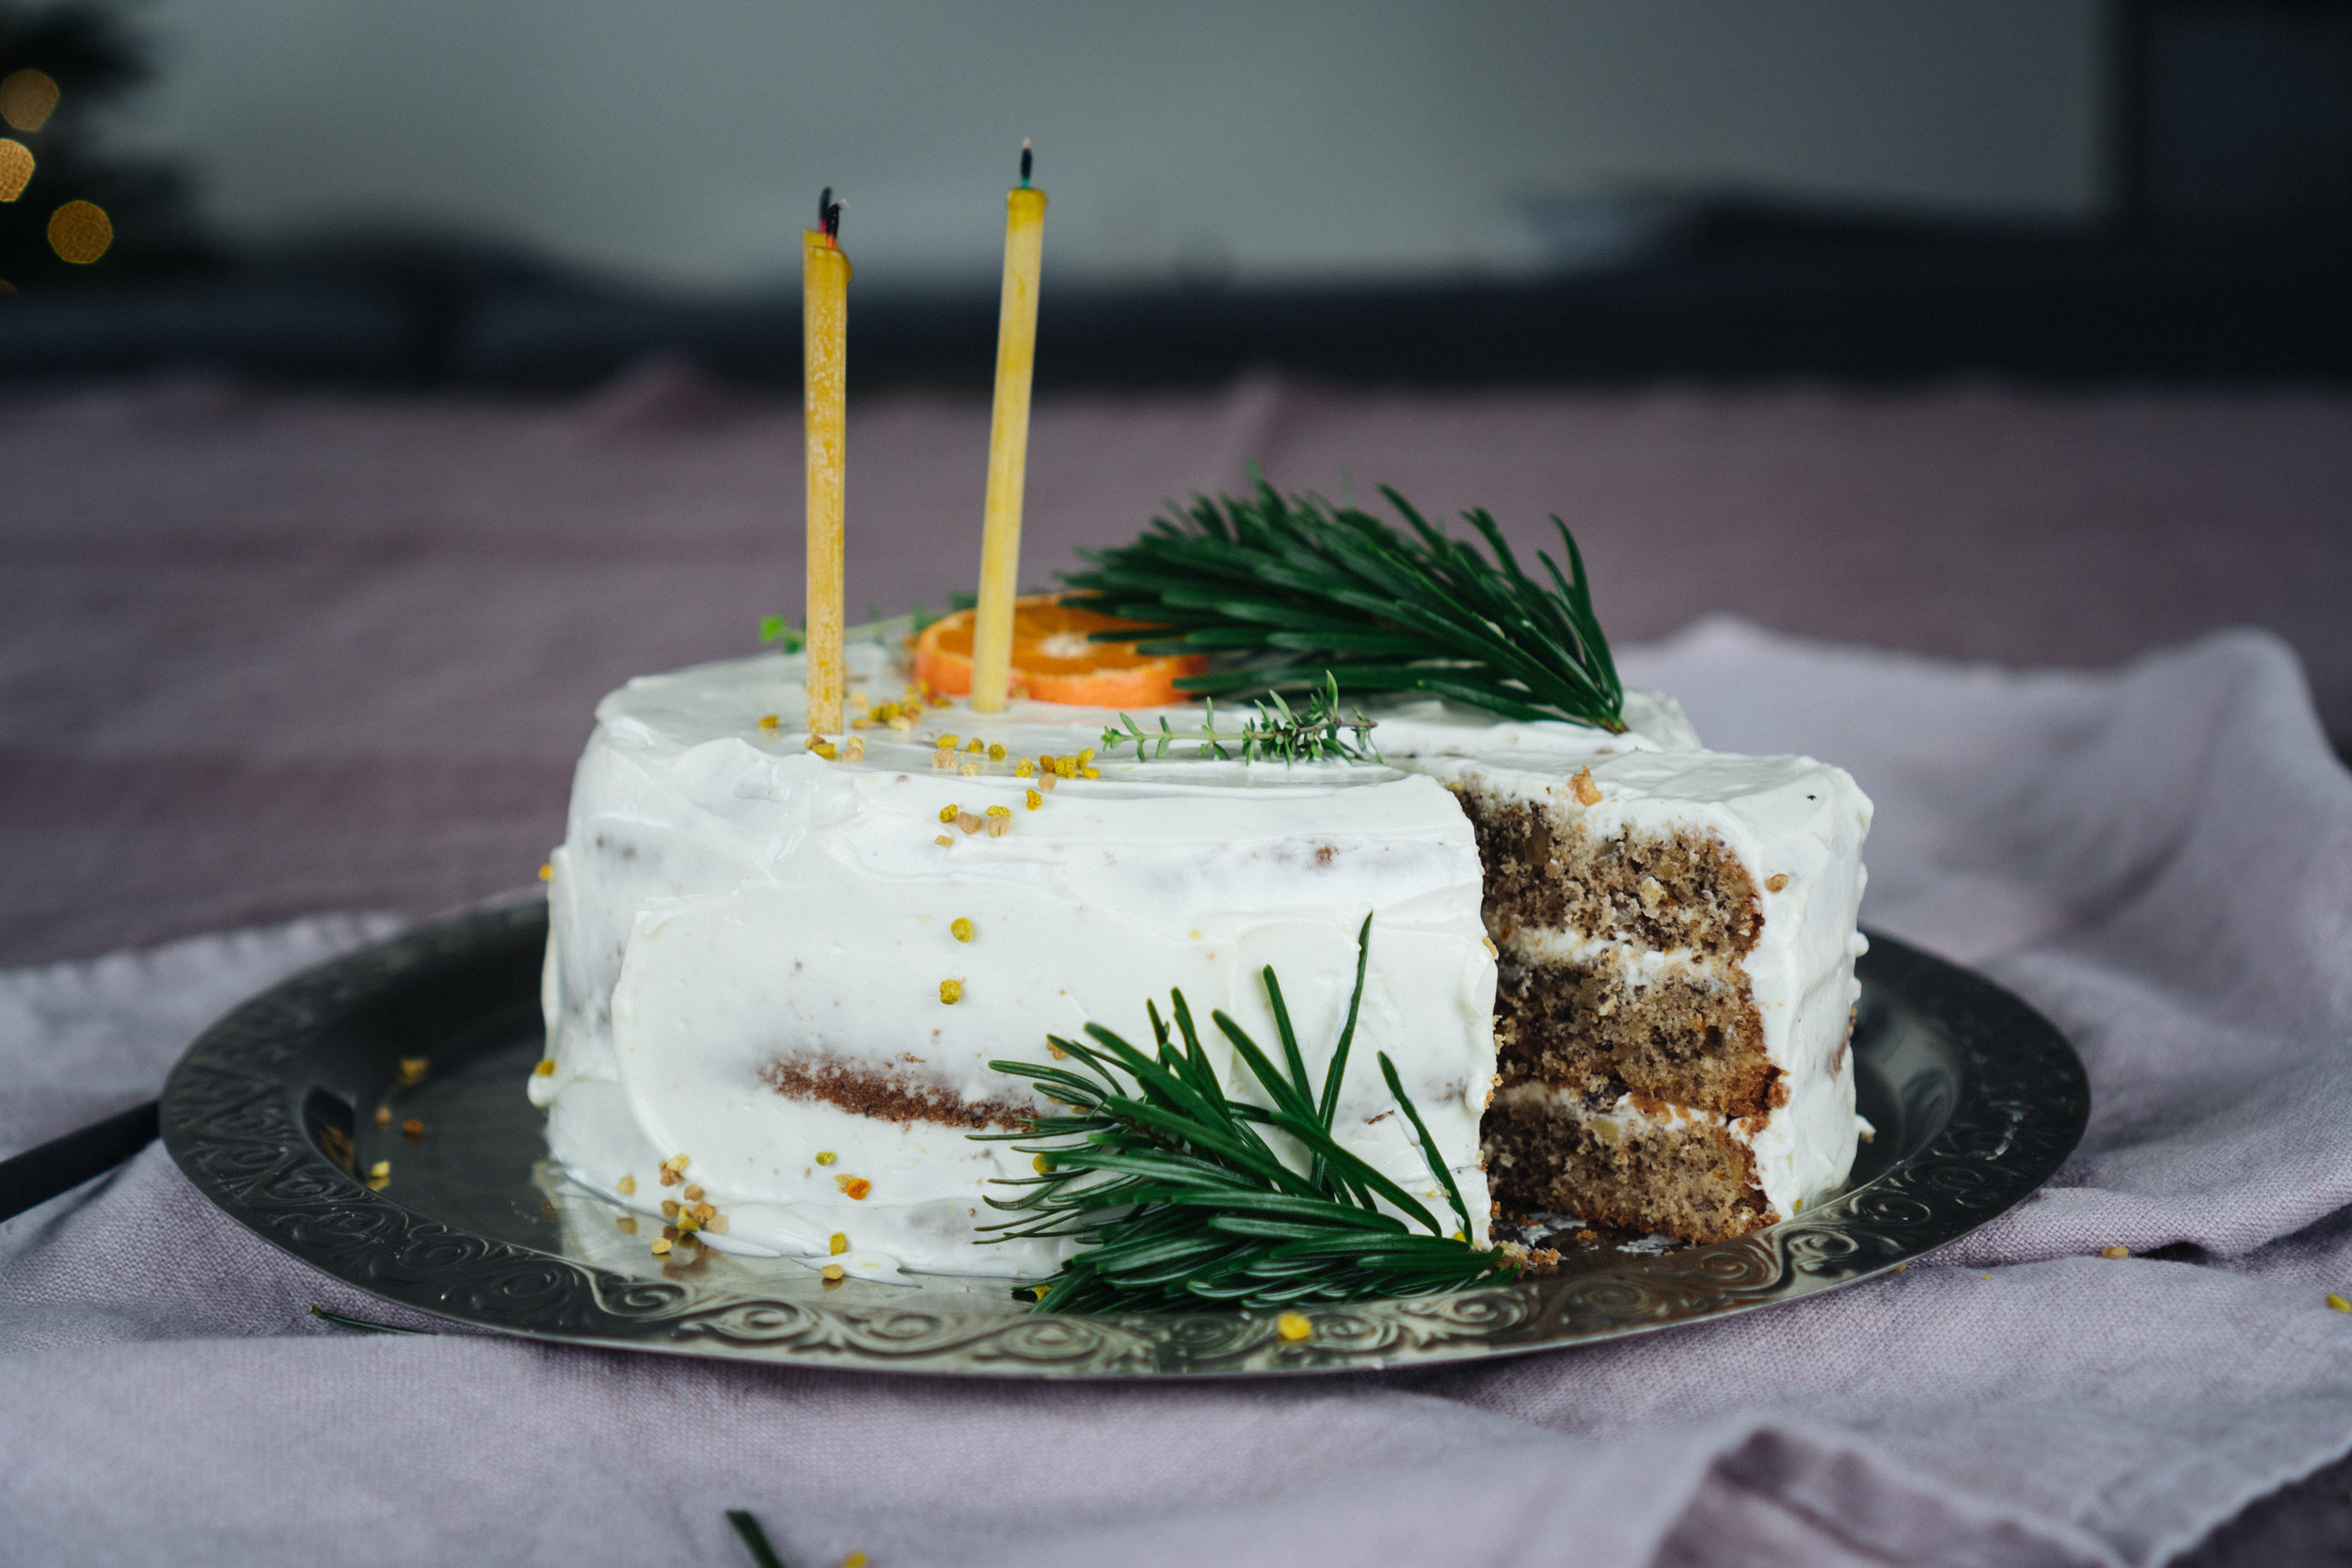 Spiced_Orange_Cake_with_Cream_cheese_Frosting-3.jpg